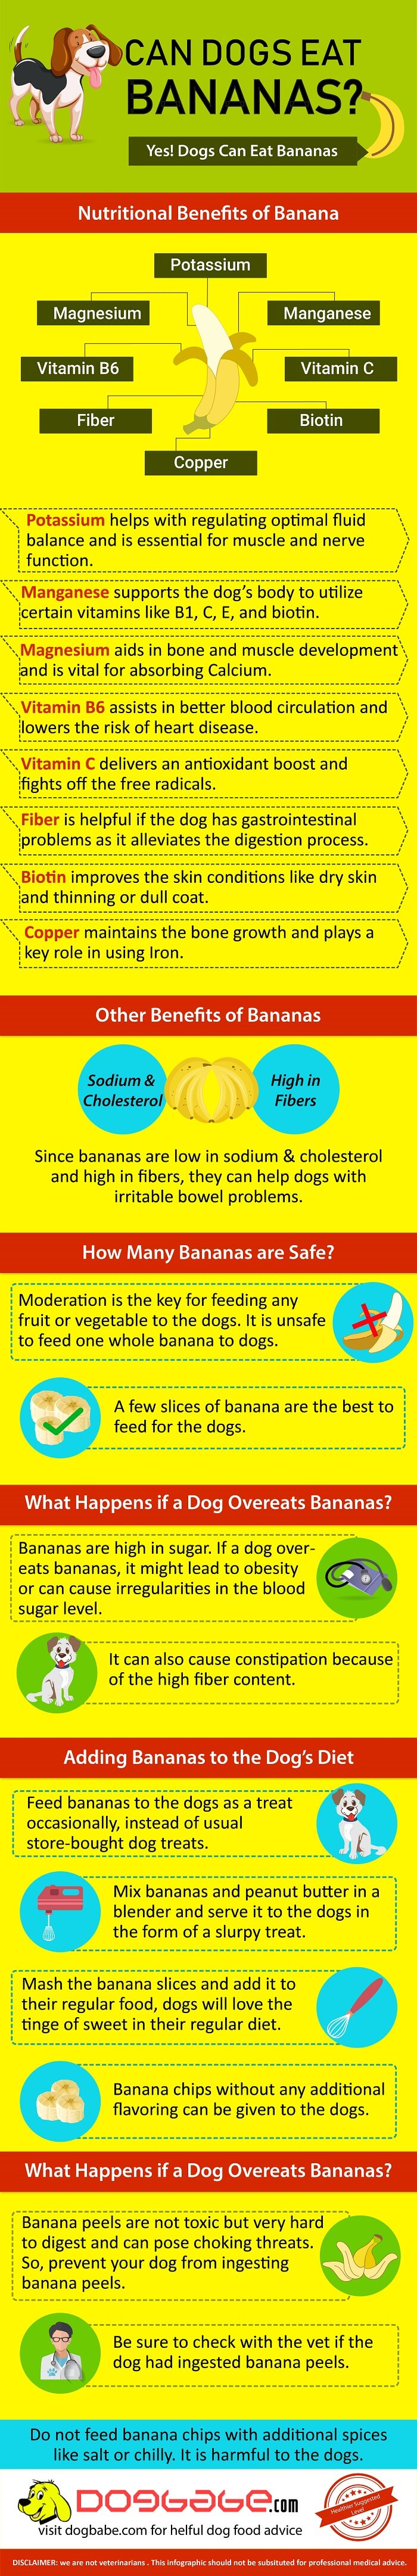 can dogs eat banana infographic